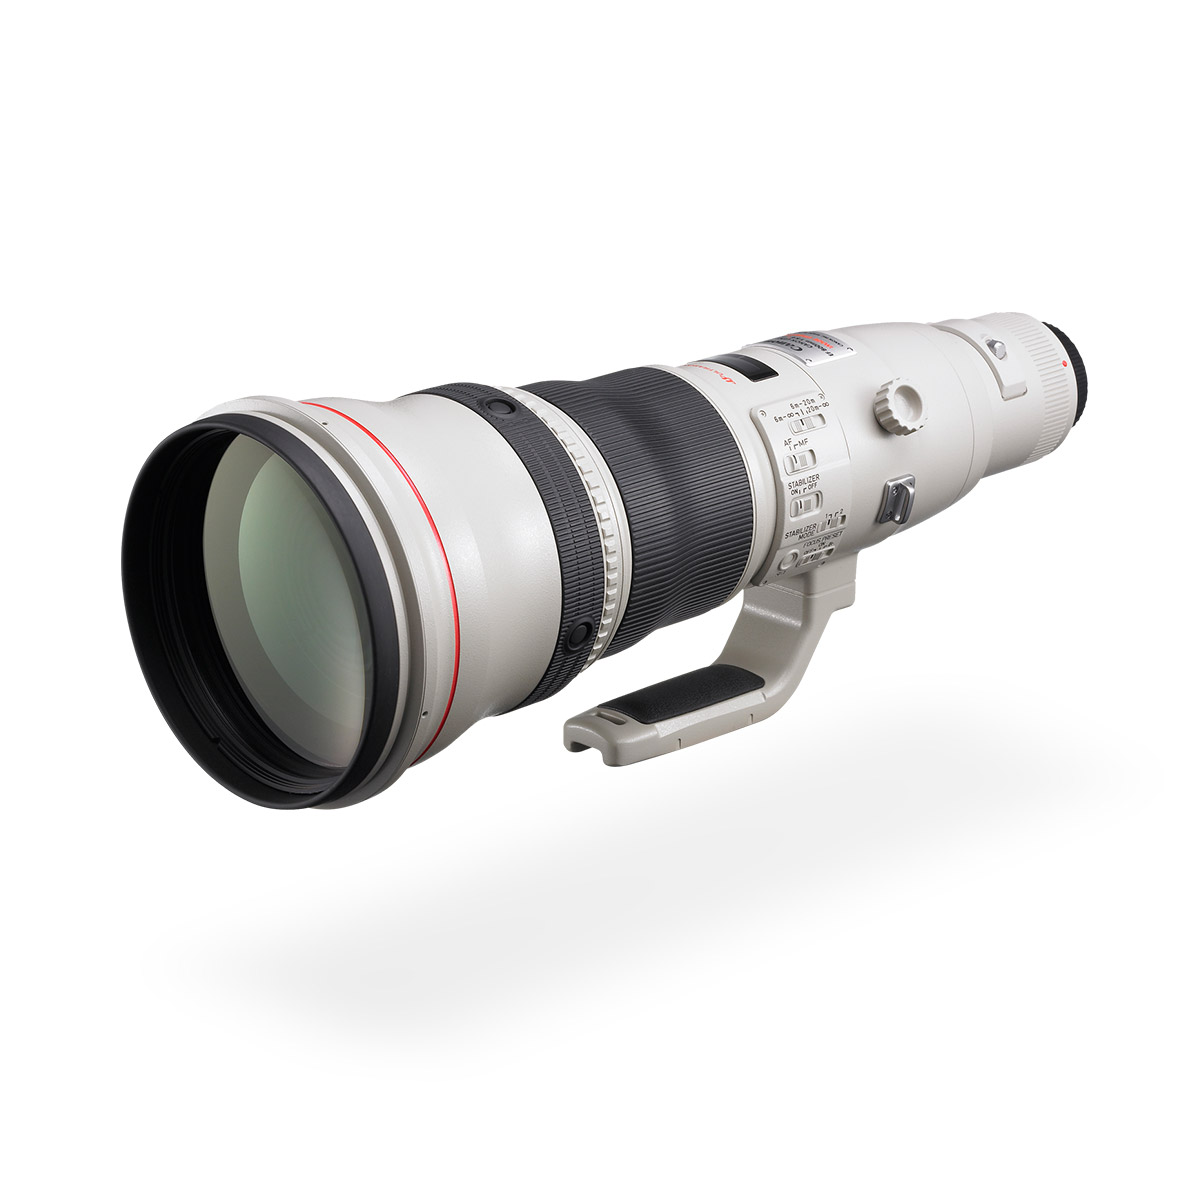 EF 800mm f/5.6L IS USM lens